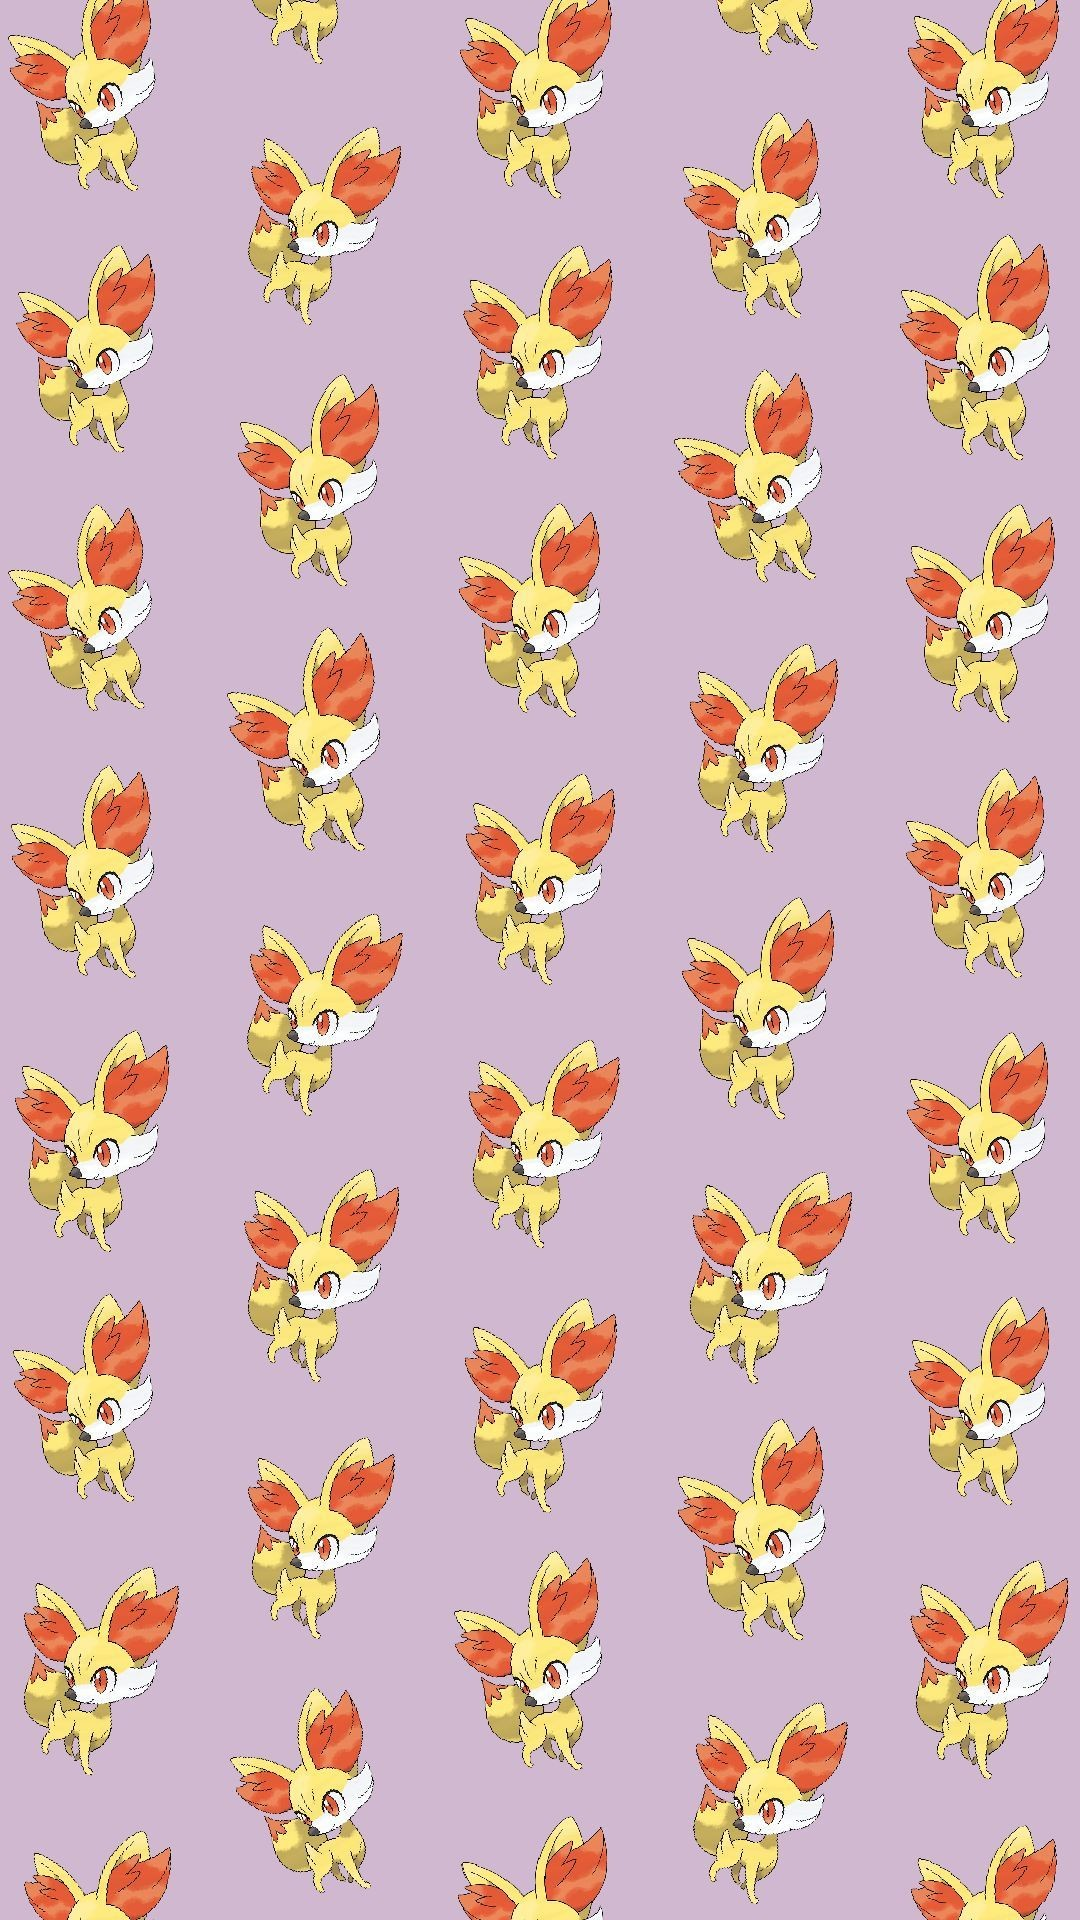 1080x1920 Some Pokemon wallpapers ☆